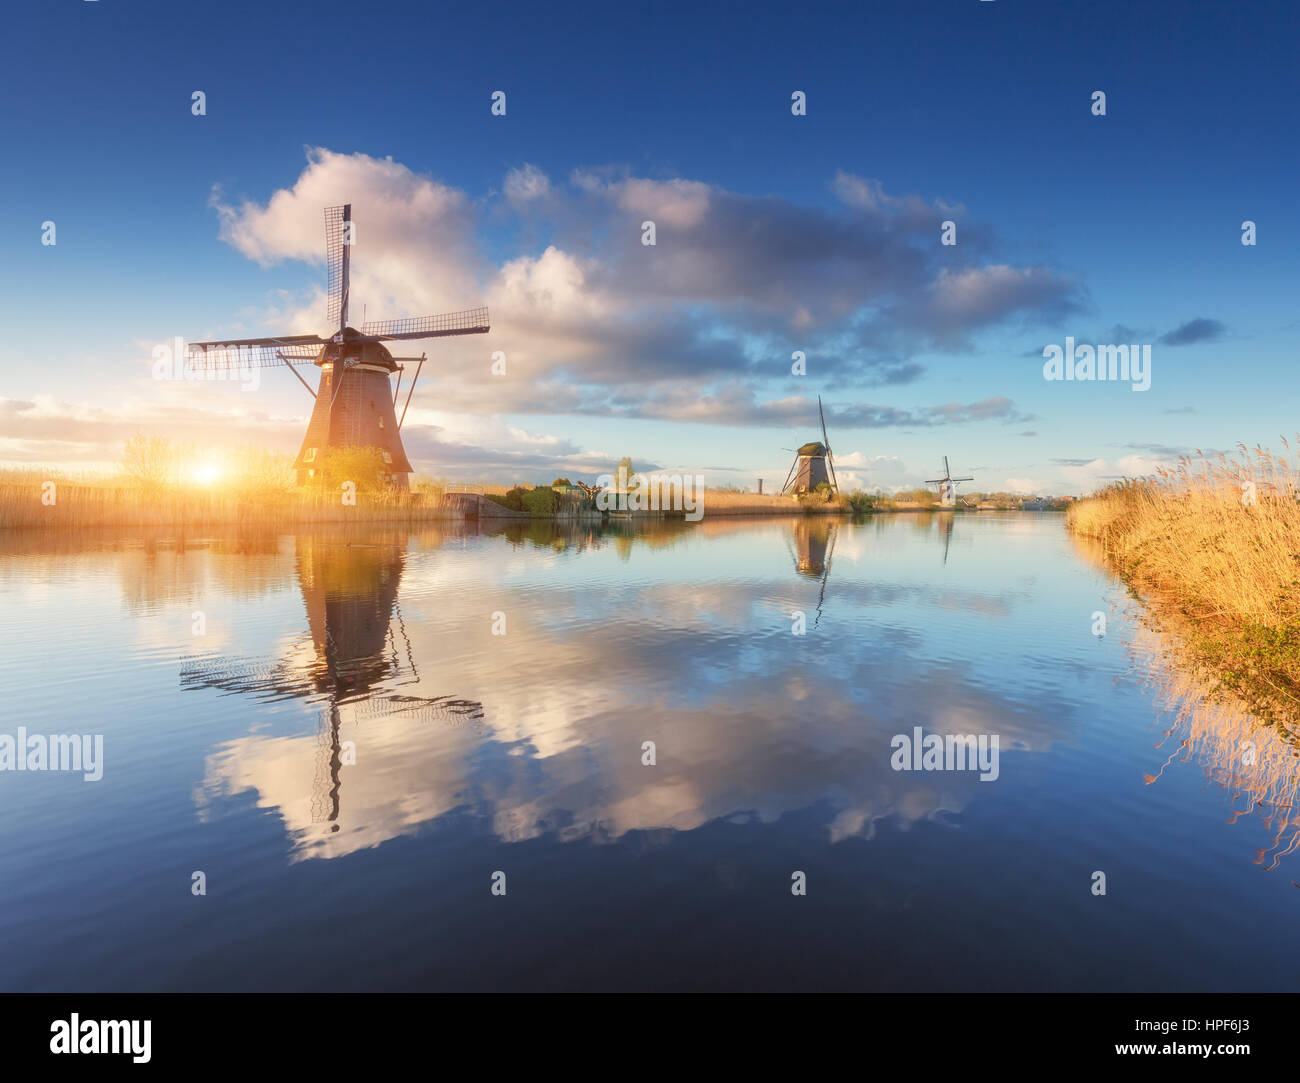 Windmills at sunrise. Rustic landscape with amazing dutch windmills near the water canals with blue sky and clouds - Stock Image